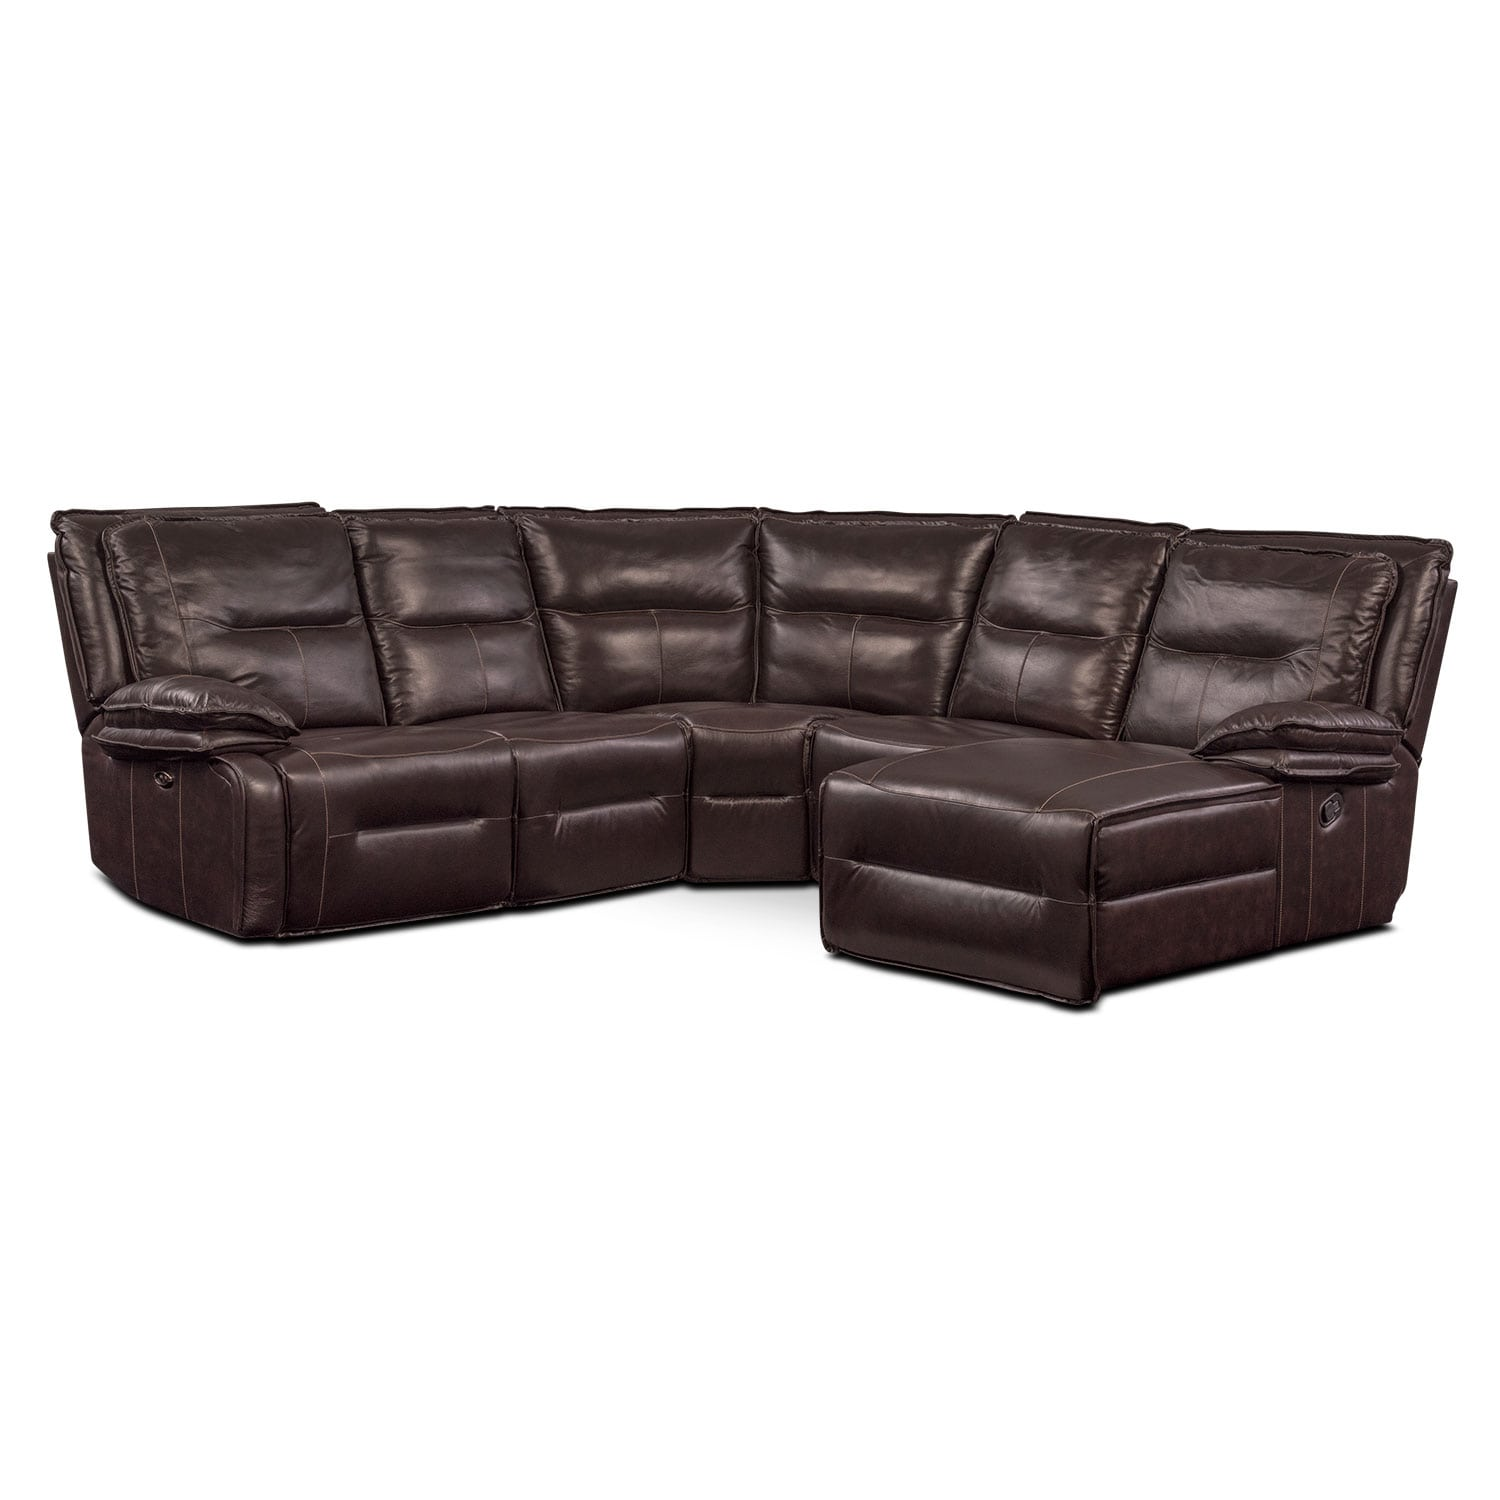 Living Room Furniture - Nikki 5-Piece Power Reclining Sectional with 1 Recliner and Right-Facing Chaise - Brown